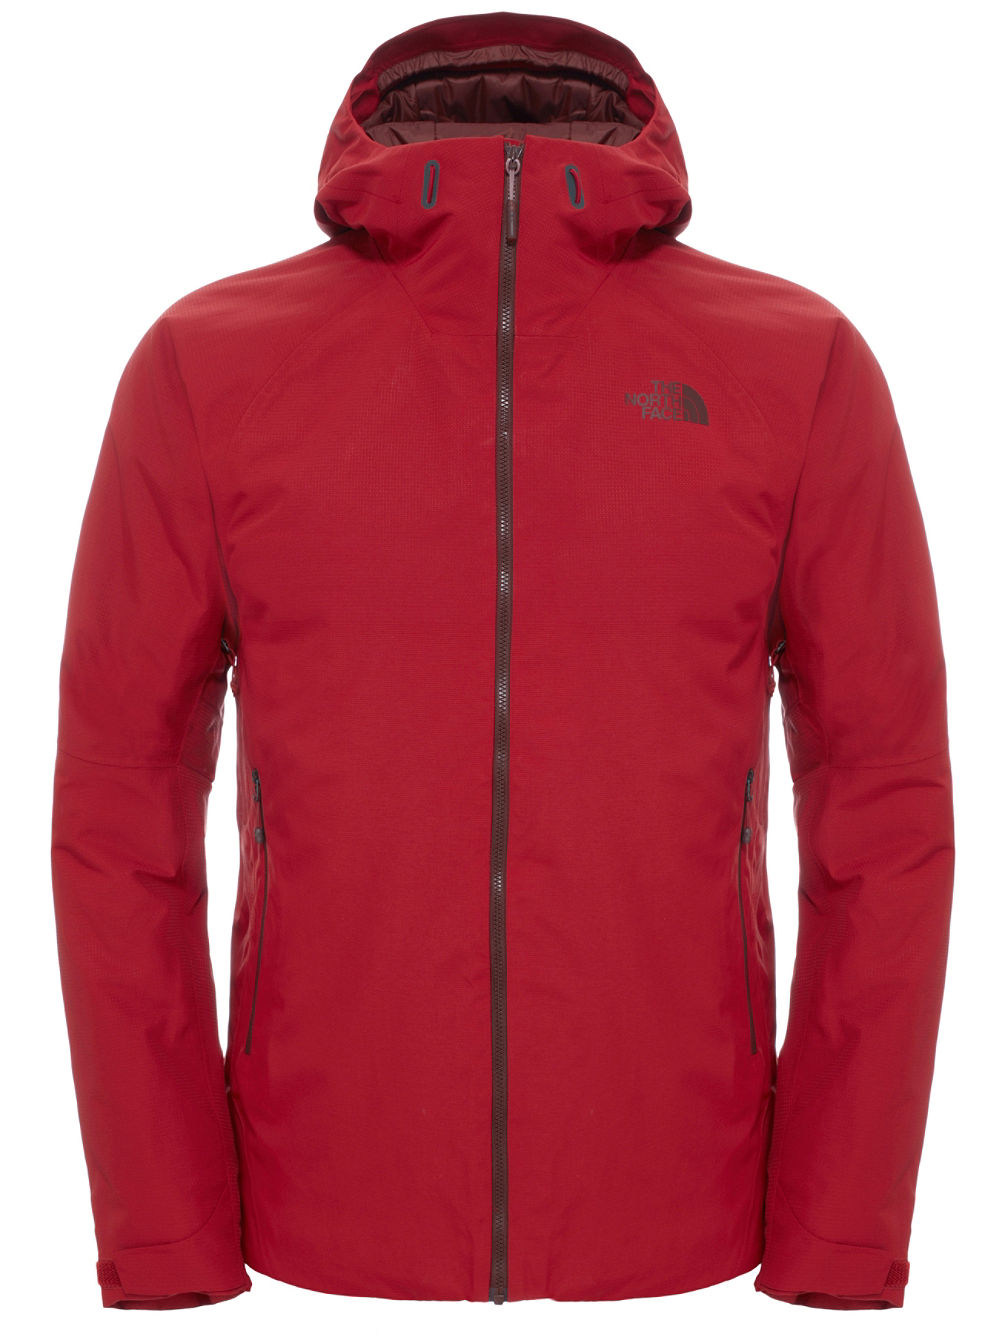 Buy The North Face Fuseform Montro Insulated Outdoor